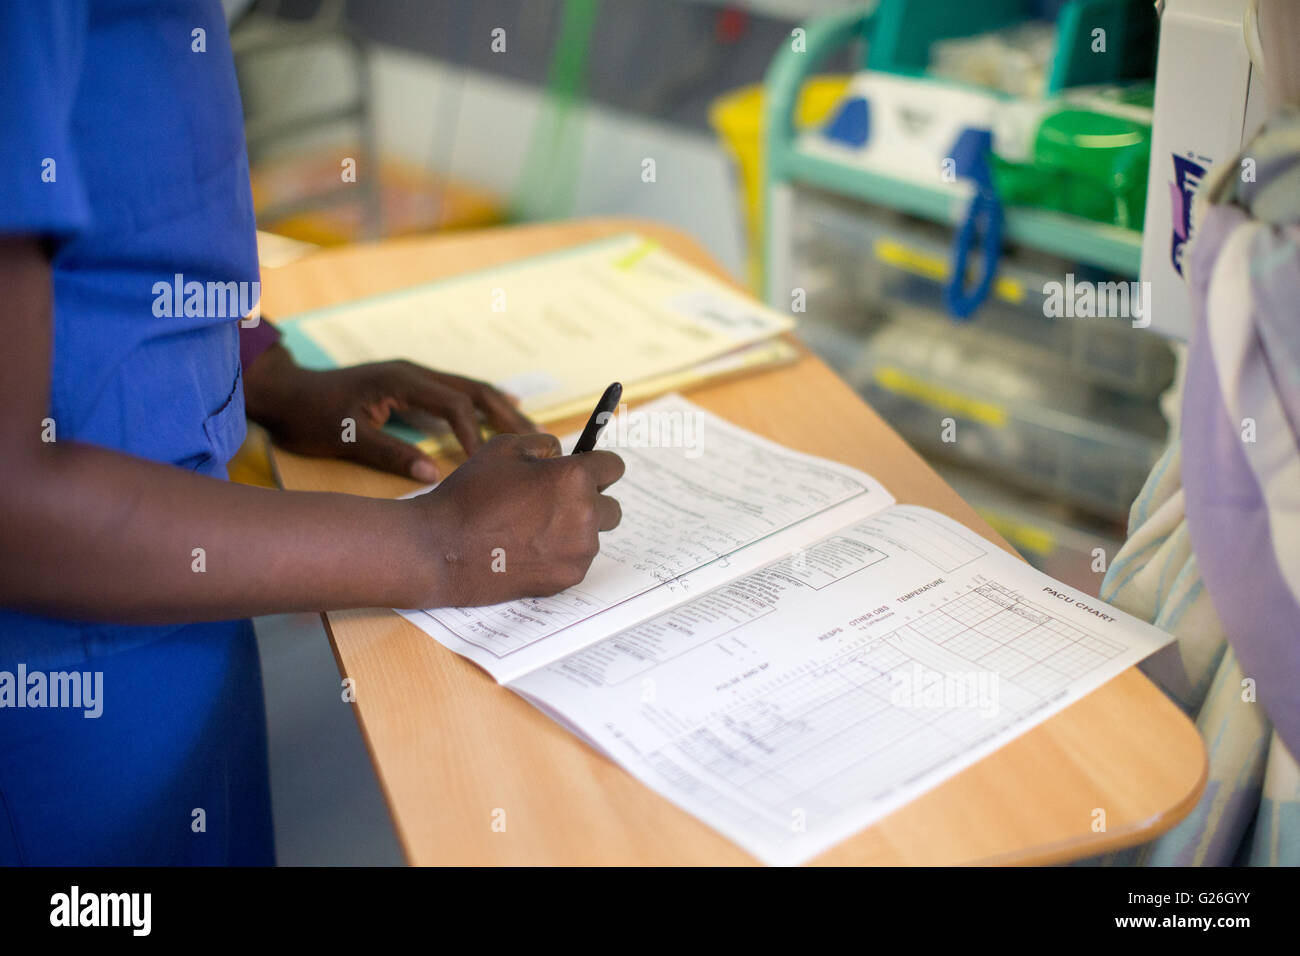 A nurse fills out patient notes in a hospital ward - Stock Image